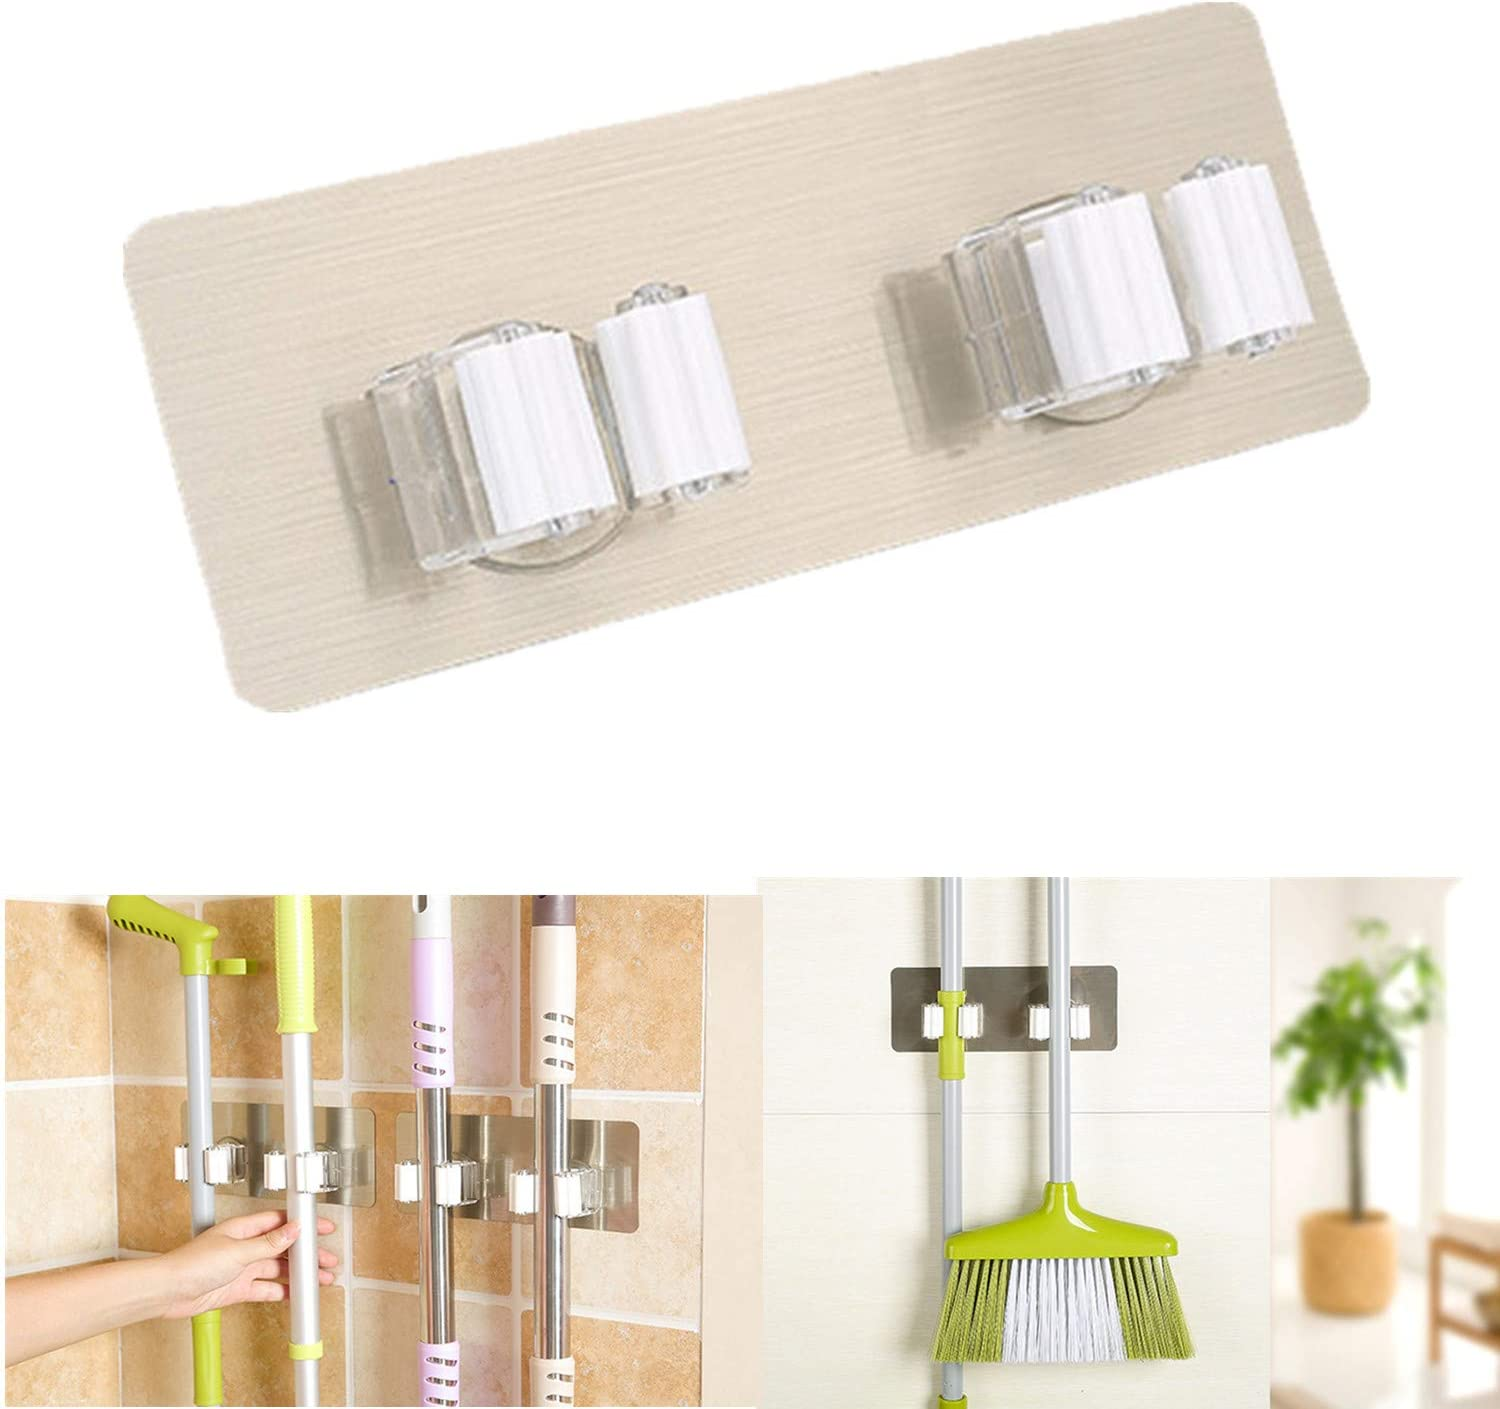 A ERIUAES 1PC Wall Mounted Mop Holder Double Buckle,Self Adhesive Wall Mounted Mop Organizer Storage Rack Clip